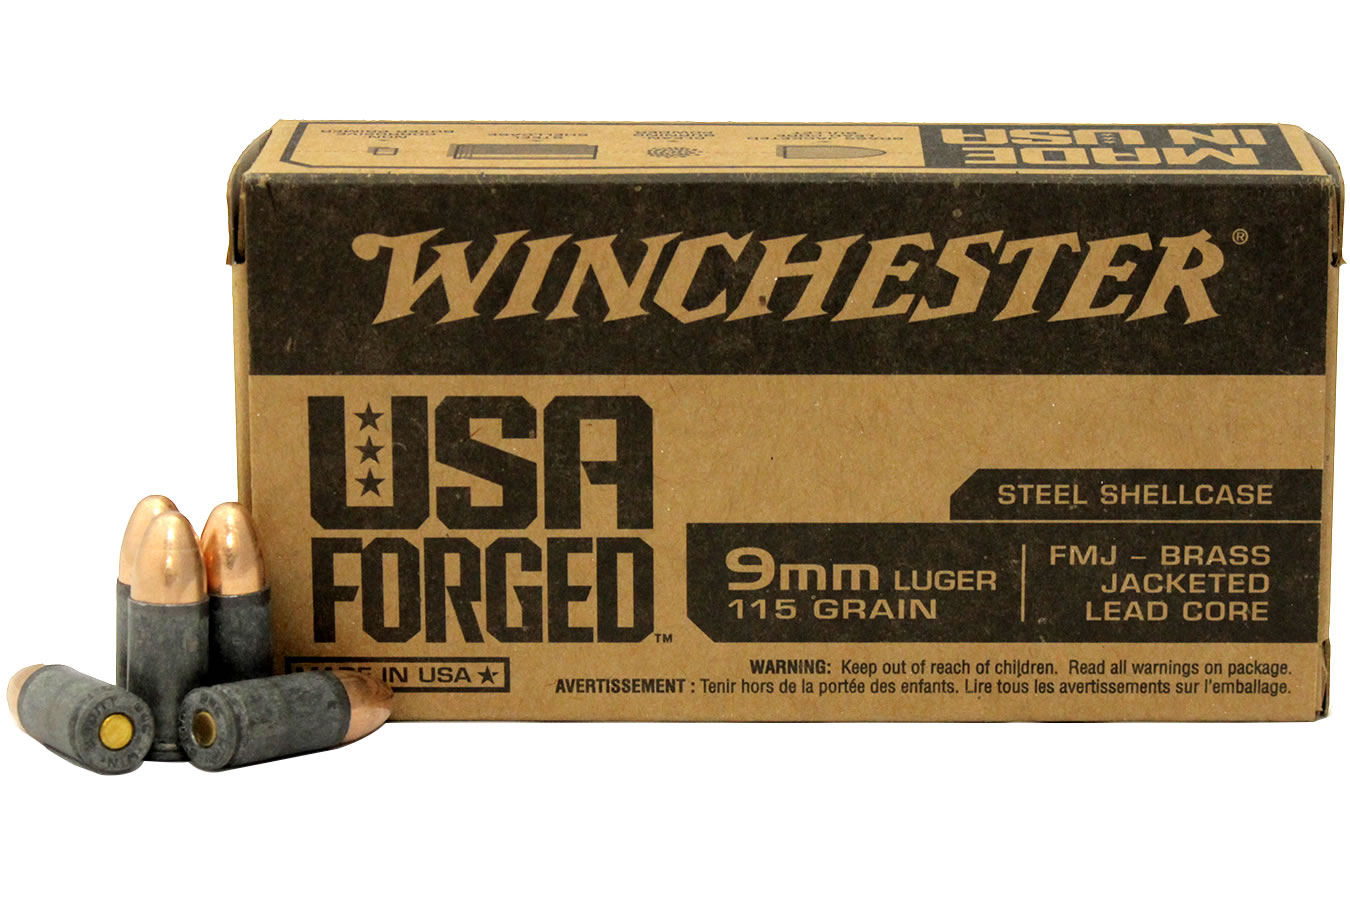 9MM LUGER  115 GR FMJ- BRASS JACKETED LEAD CORE